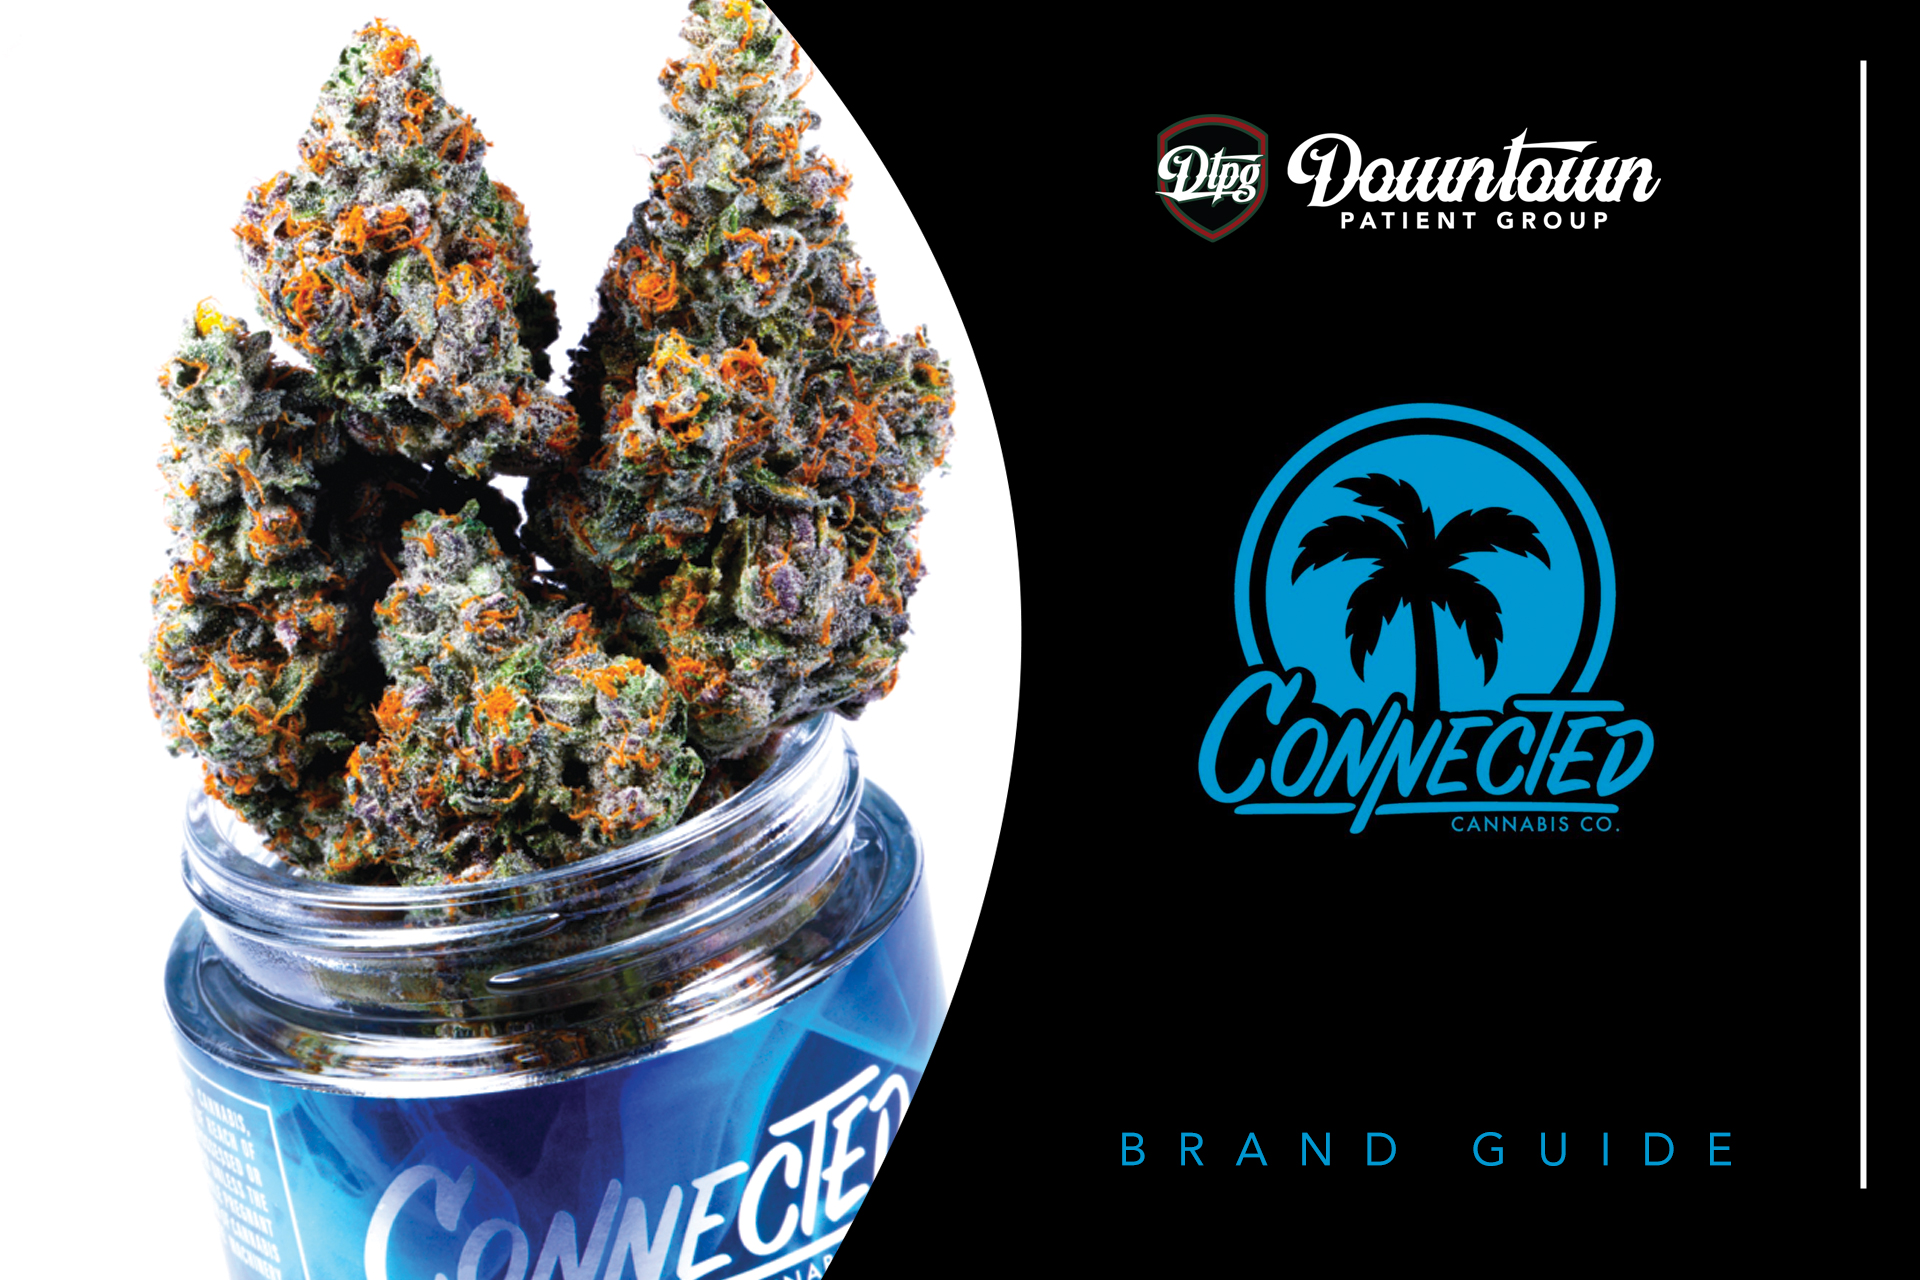 Connected Cannabis Co Guide: Designer Indoor Flower And Pre-Rolls At DTPG